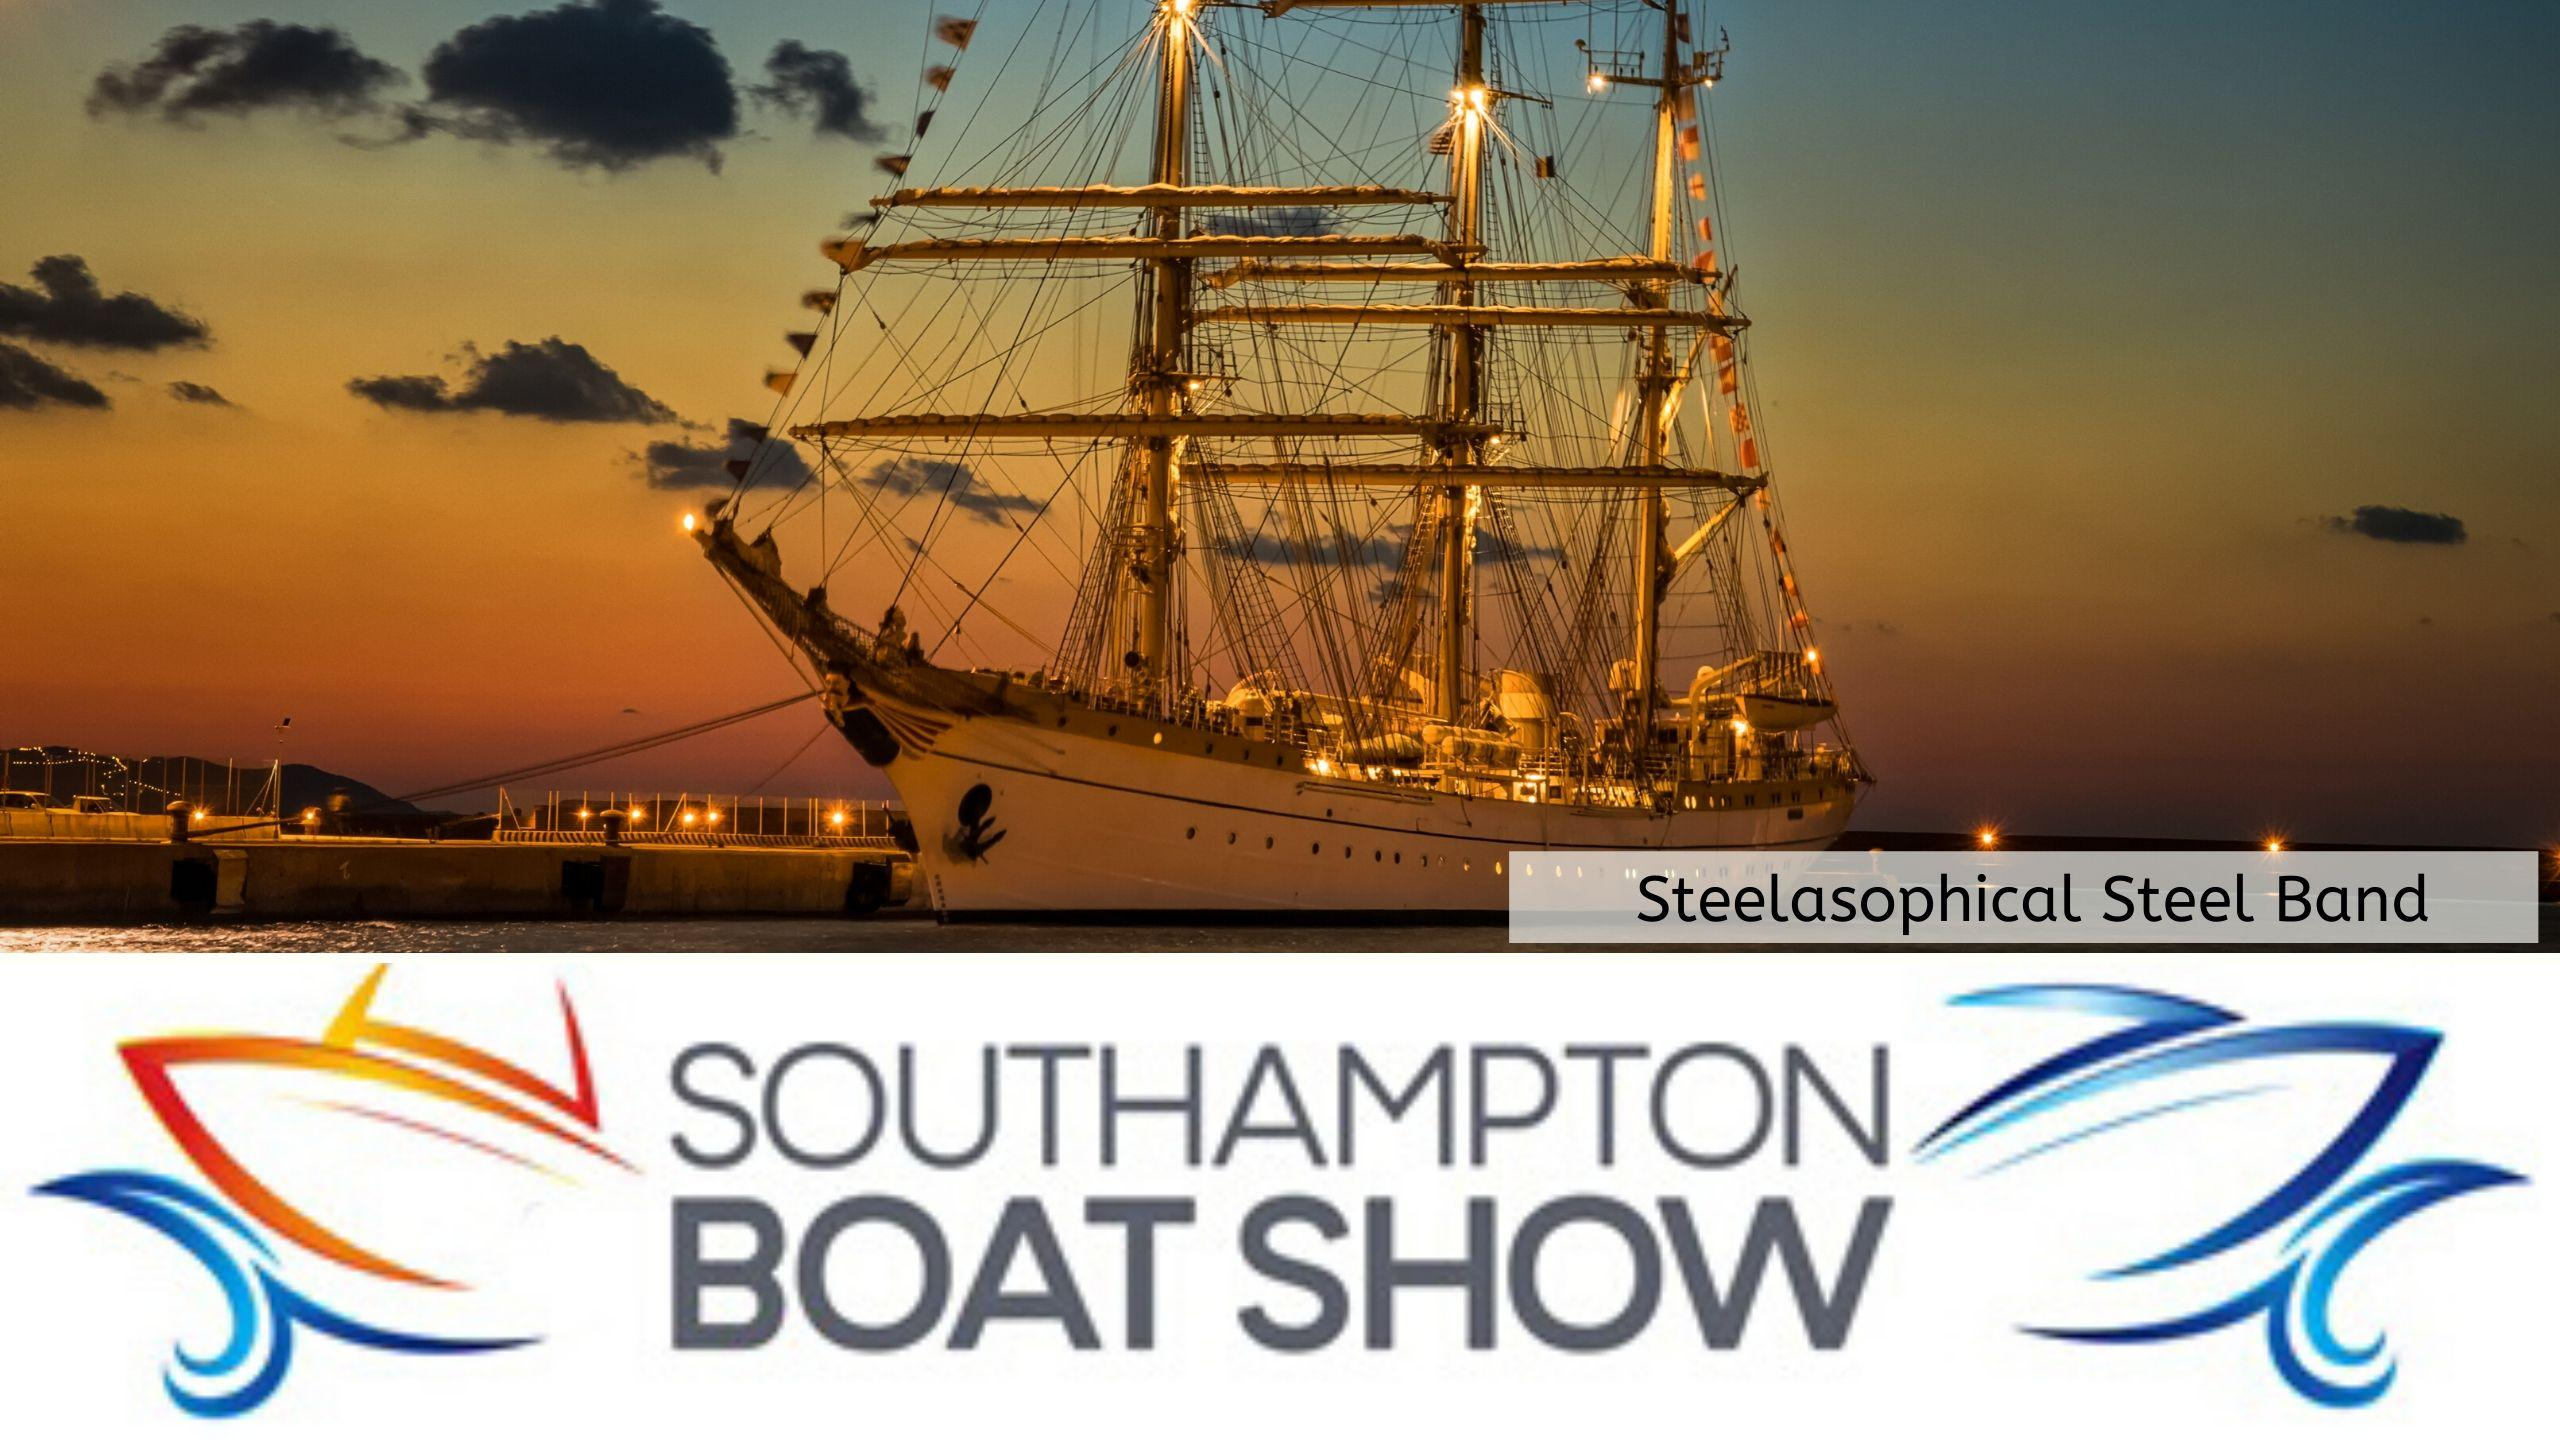 Steelasophical Steel Band Southampton Boat Show Yacht Market Tall Ships